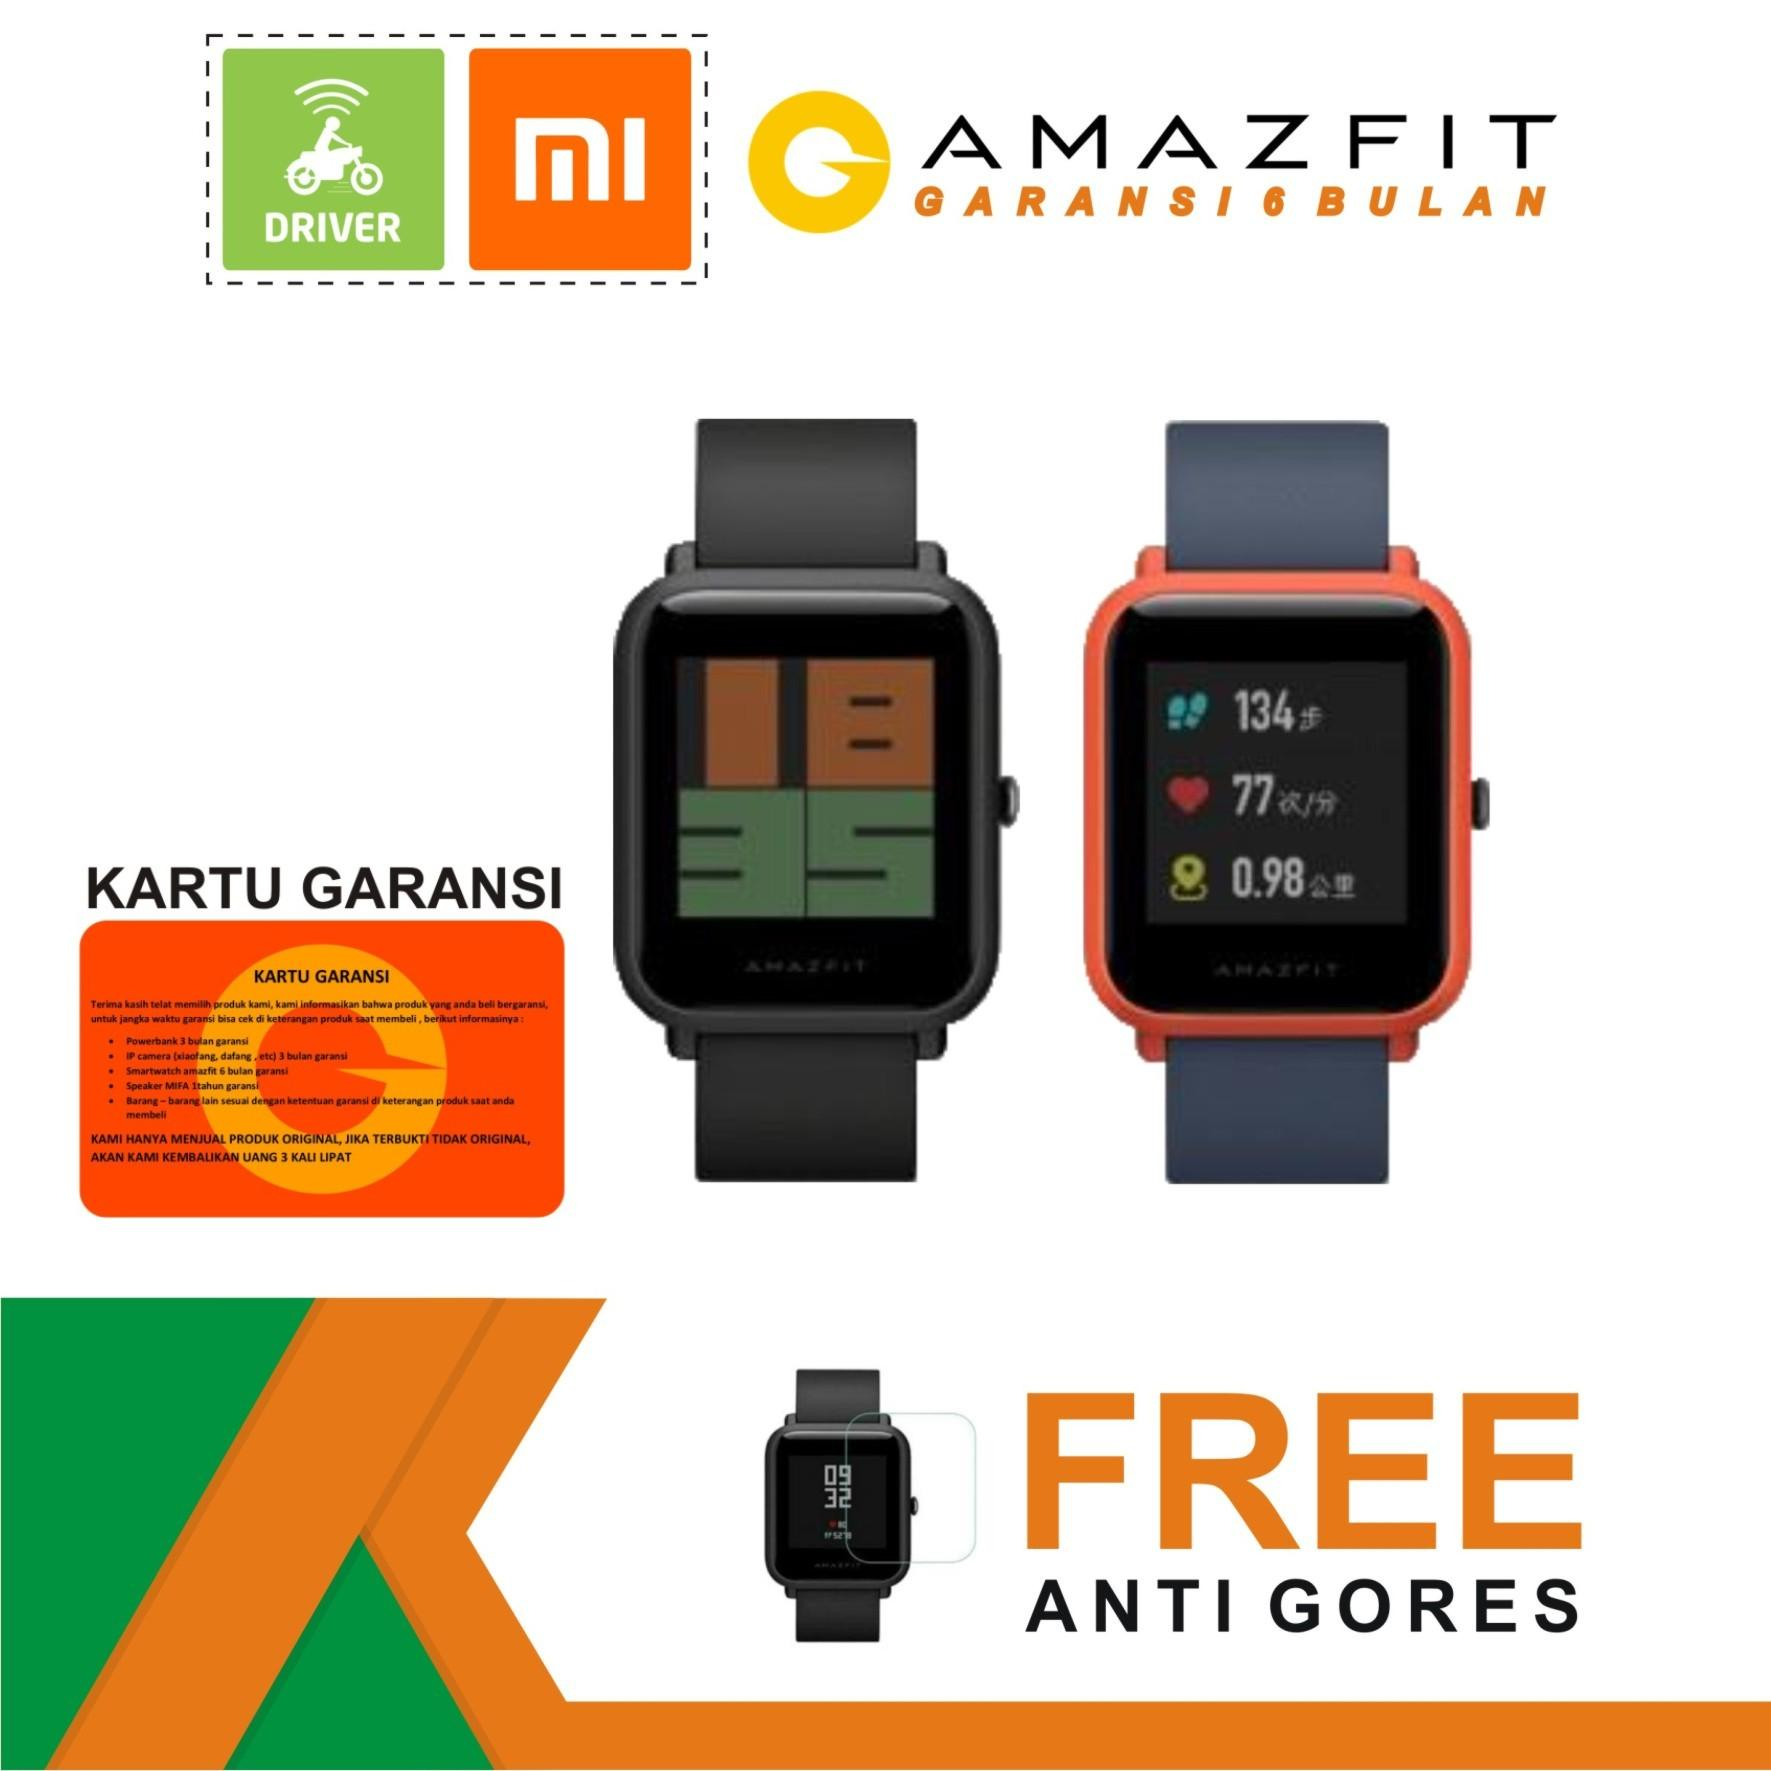 Buy Sell Cheapest Xiaomi Amazfit Bip Best Quality Product Deals Cover Protect Shell Case Smart Watch Bit Pace Waterproof Gps Compass English Version